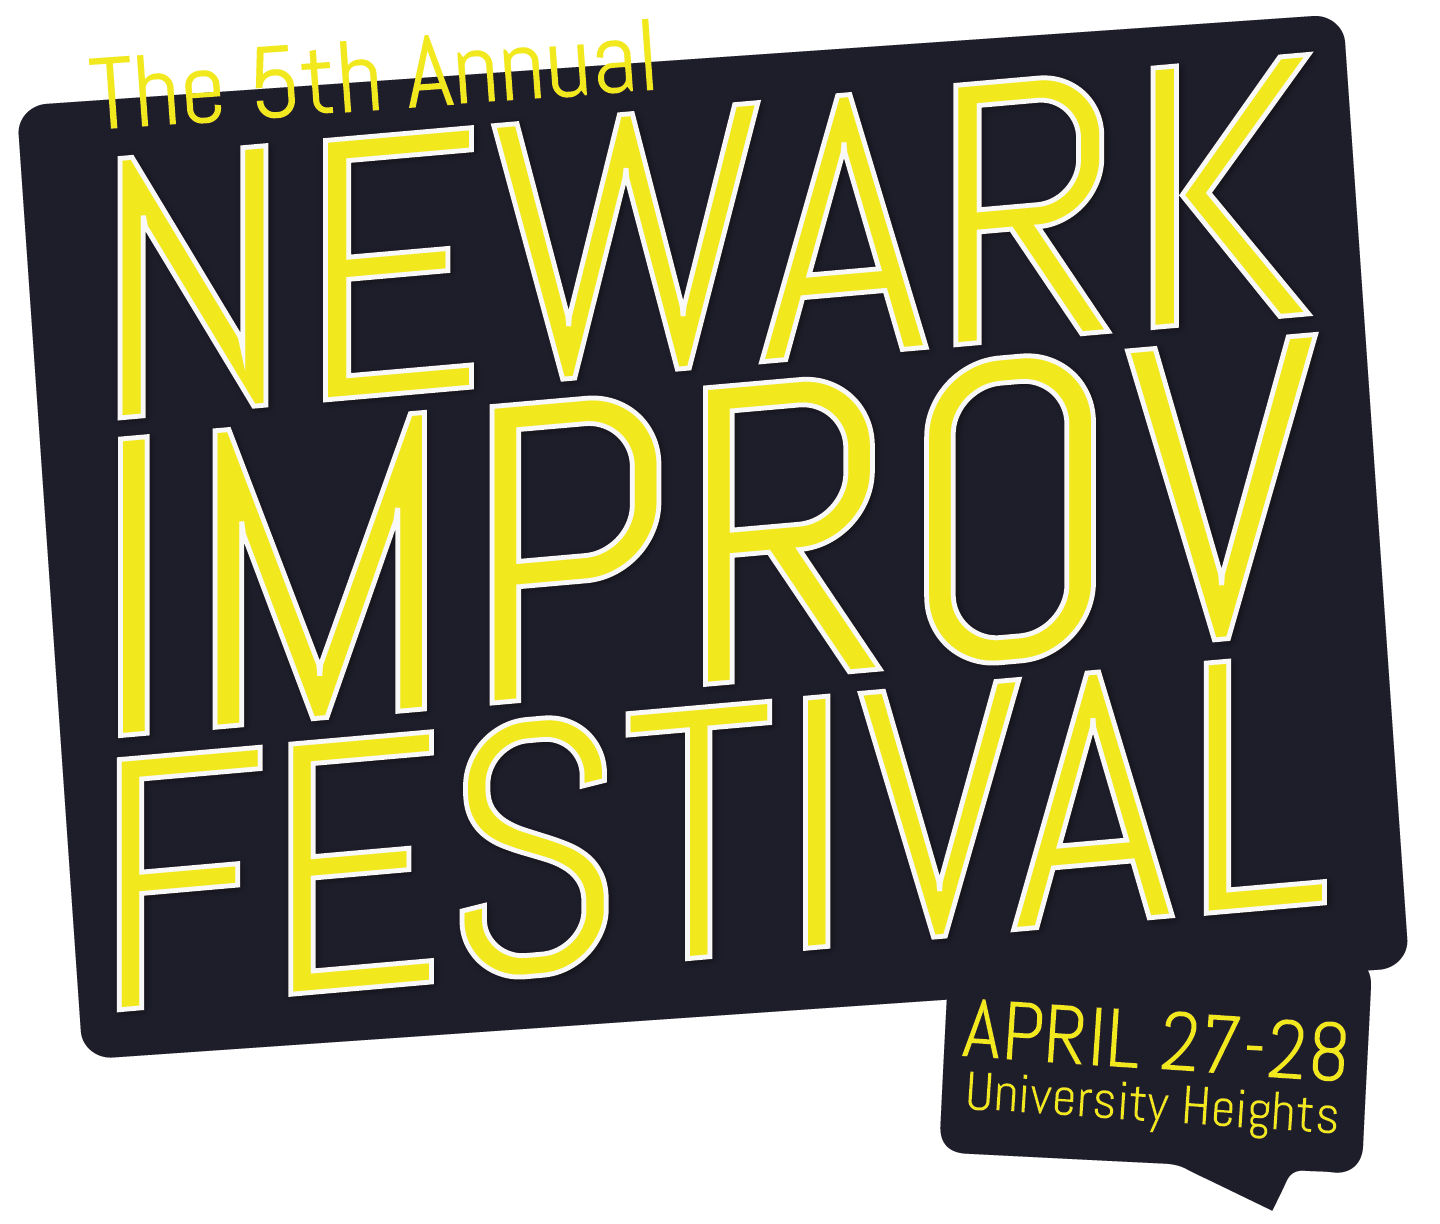 The 5th Annual Newark Improv Festival